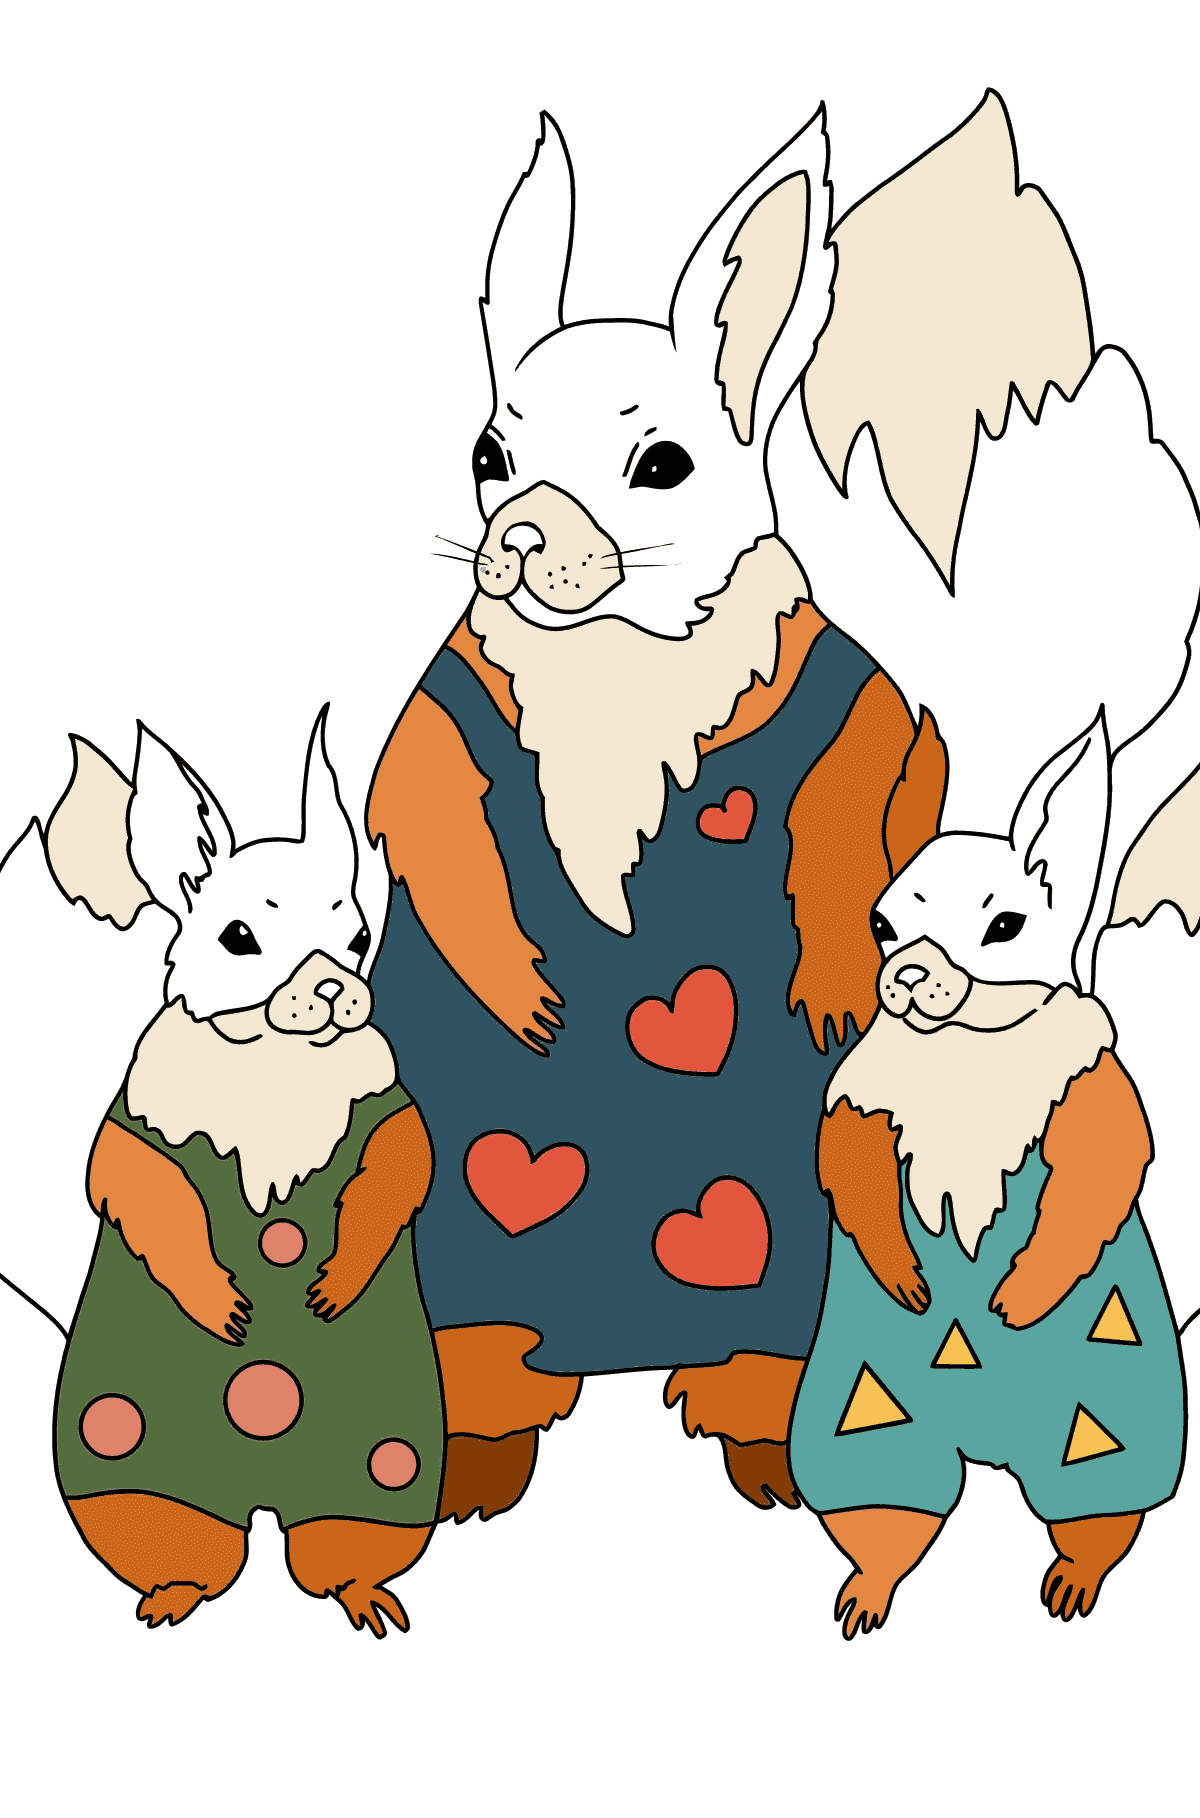 Spring Coloring Page - Squirrels have Dressed Up - Coloring Pages for Children